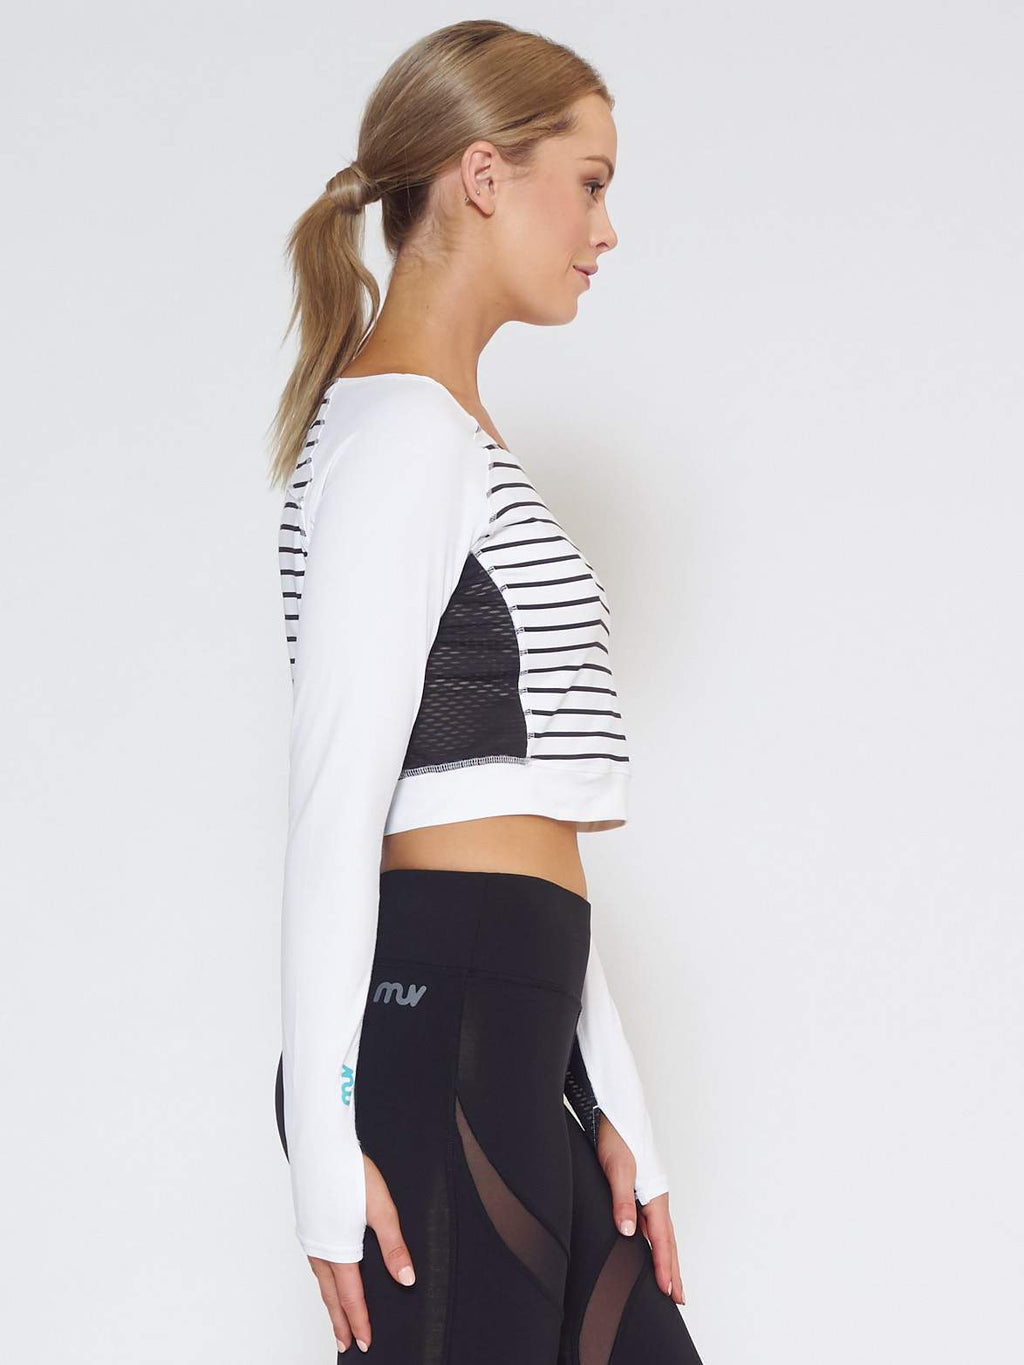 MUV Sportswear Long Sleeve Top VENT Long-Sleeve Crop - Stripe